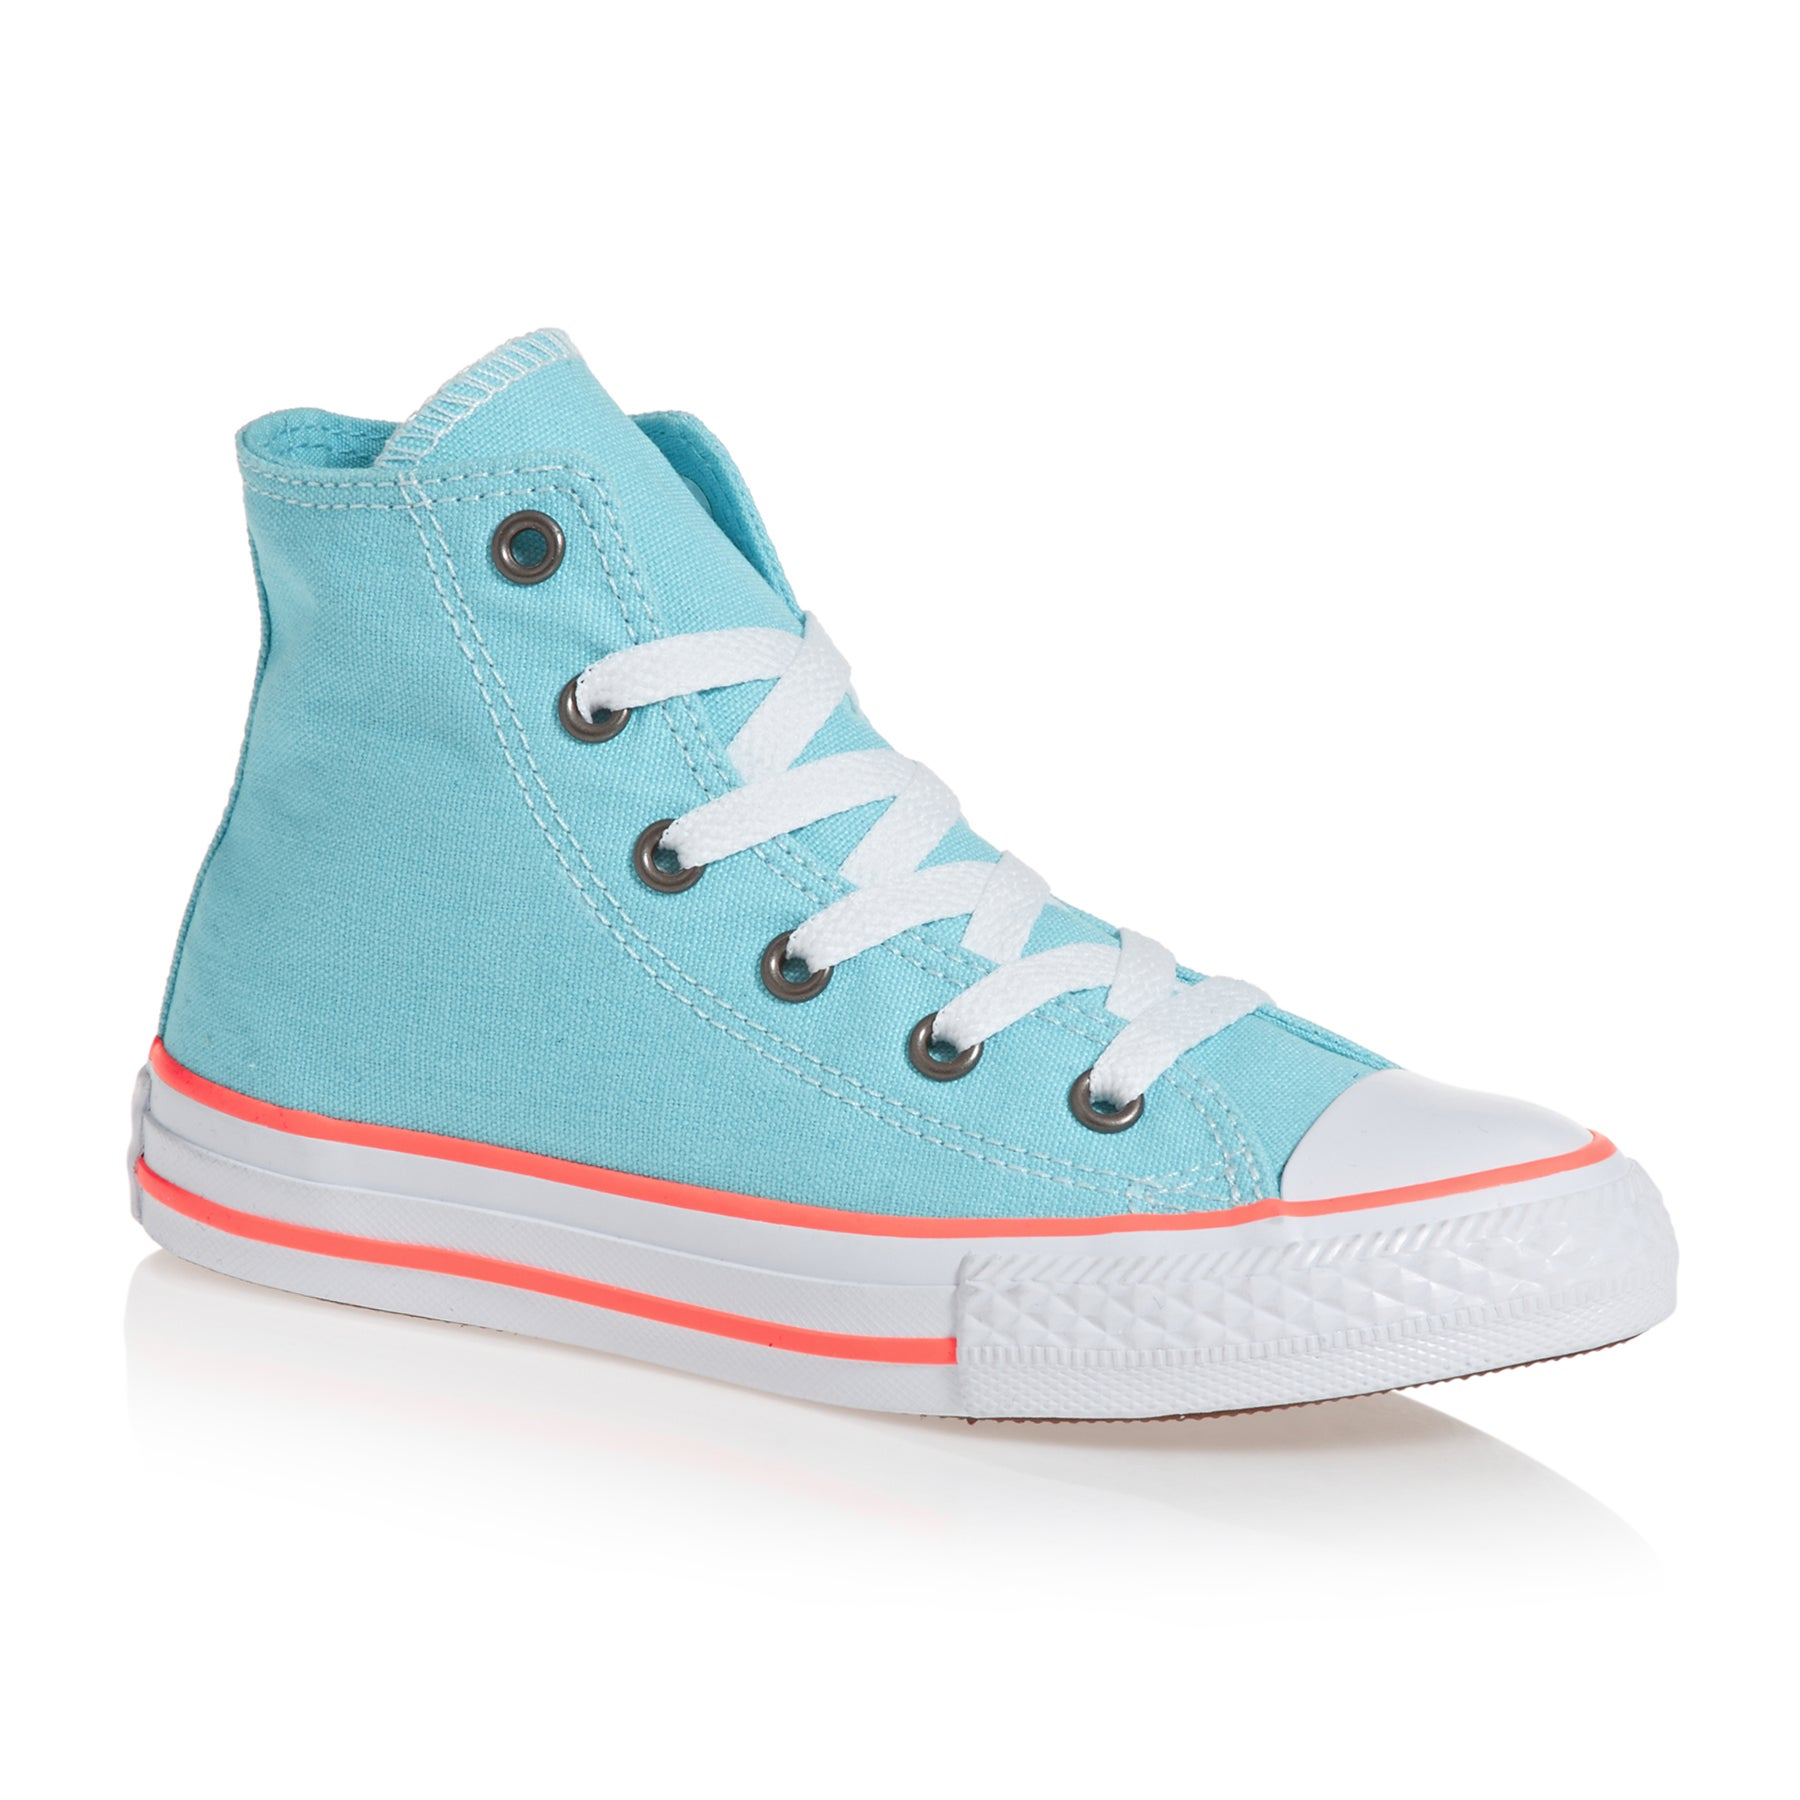 Chaussures Converse Chuck Taylor All Star Hi Junior - Bleached Aqua/crimson Pulse